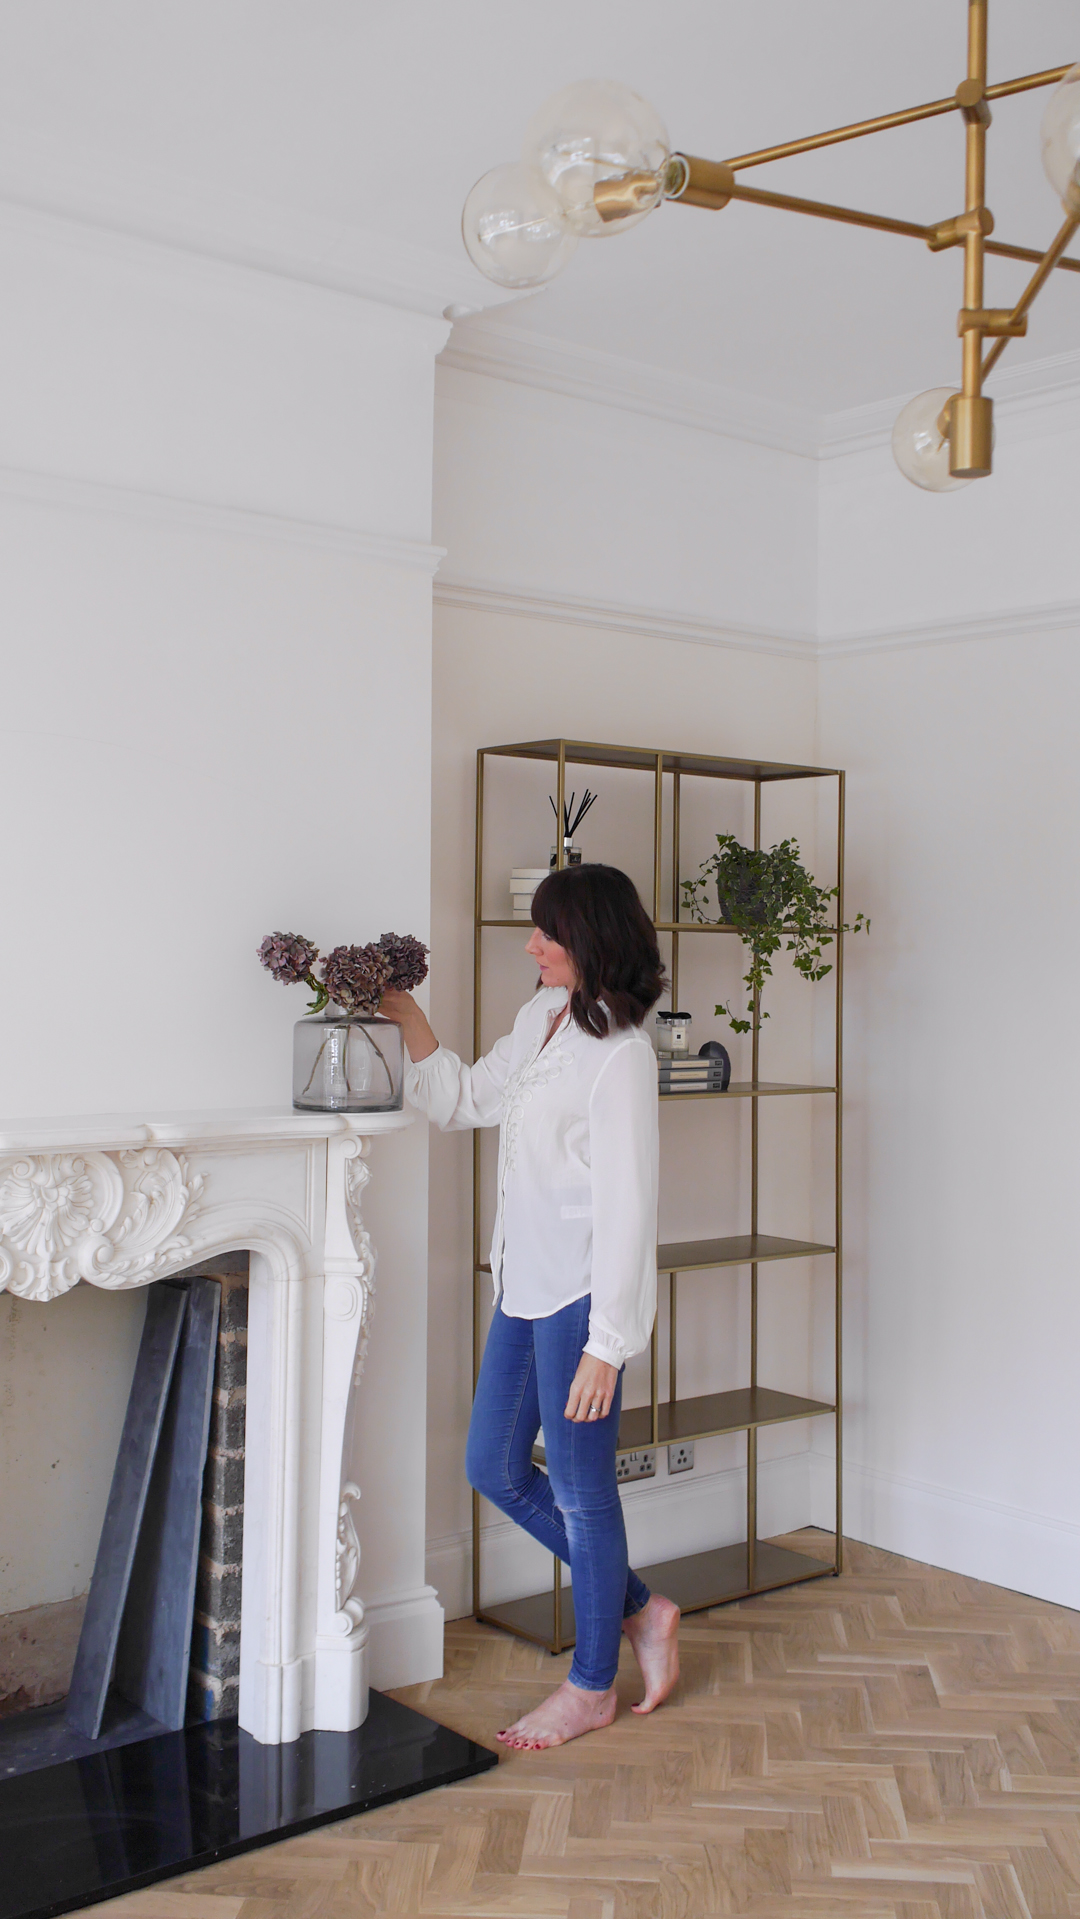 5 things you should know before embarking on a renovation project in your home